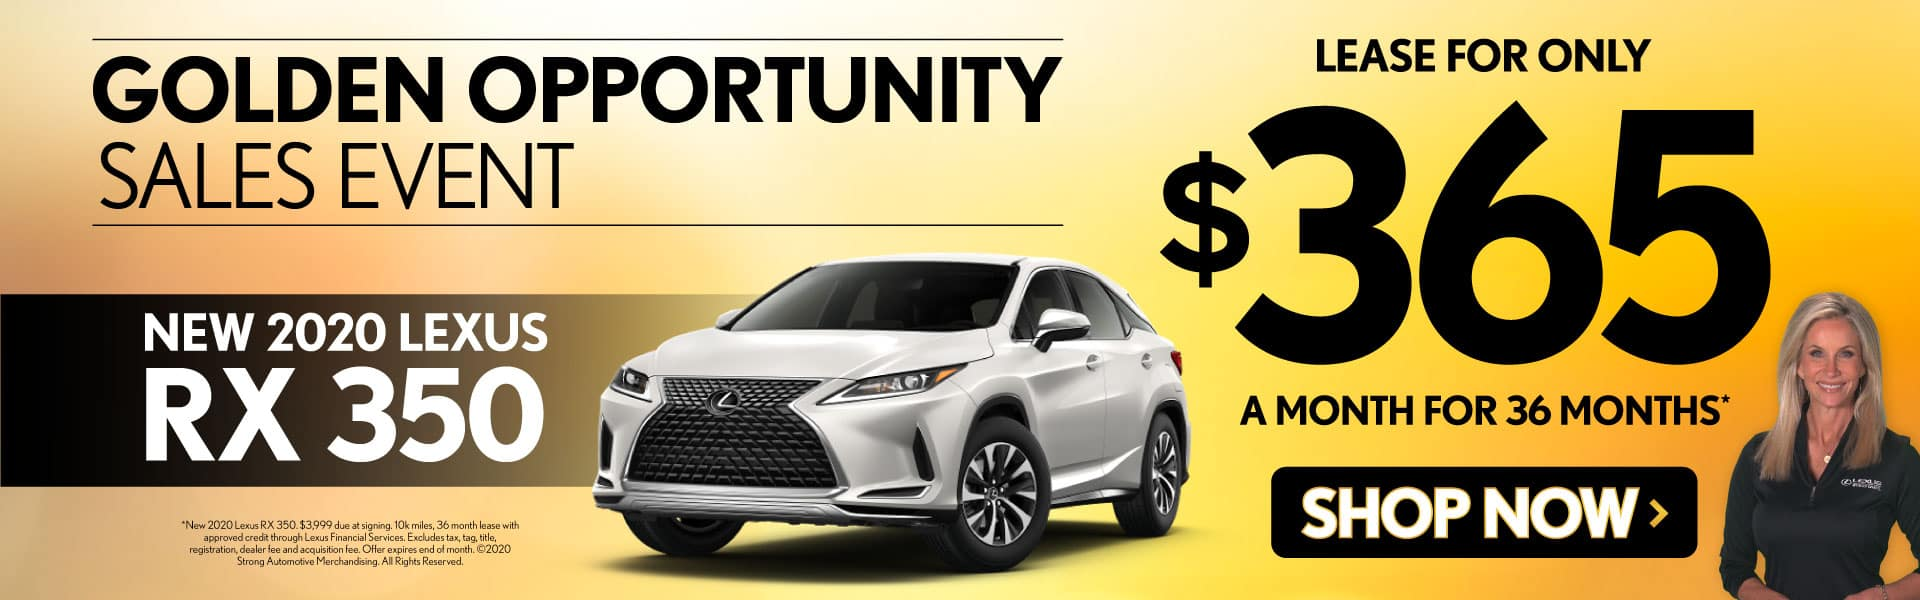 New 2020 Lexus RX 350 only $365/mo - Shop Now